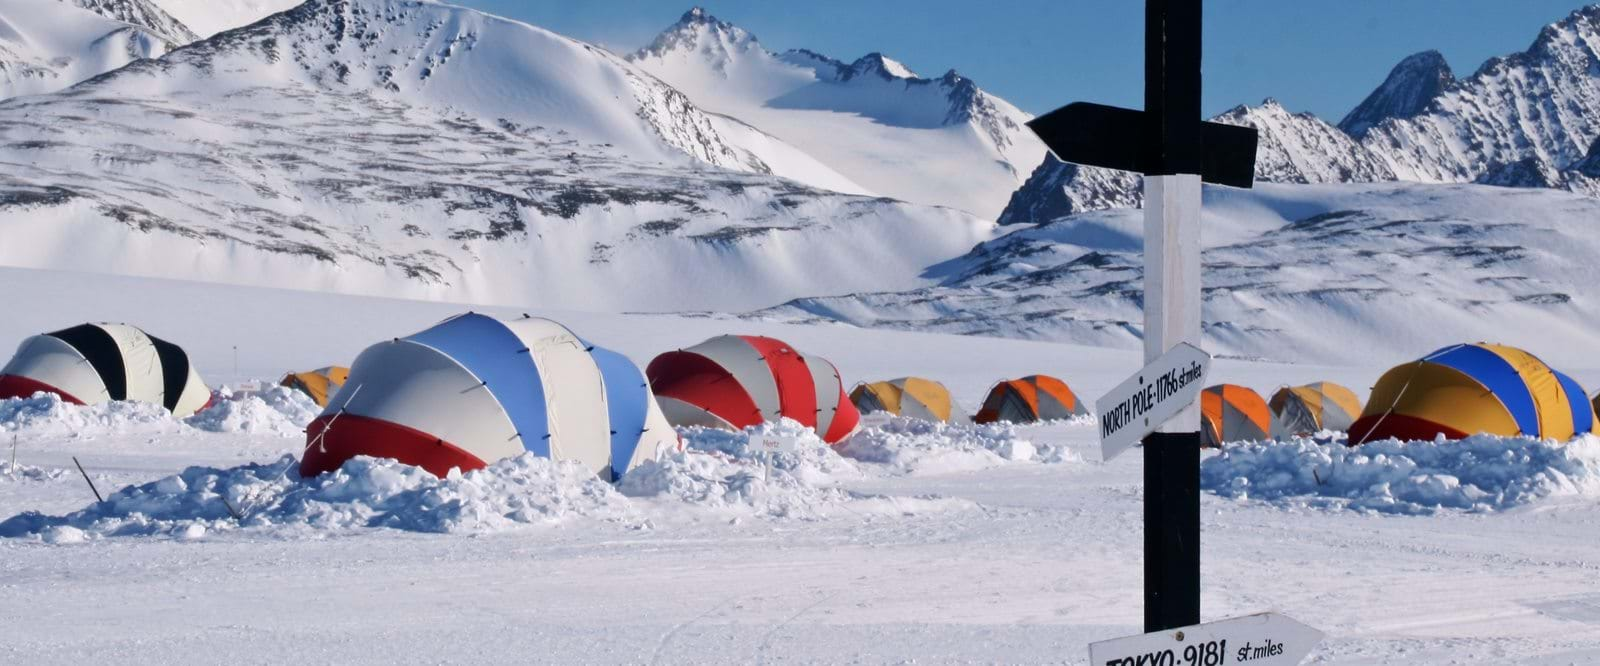 Union glacier camp, antartica